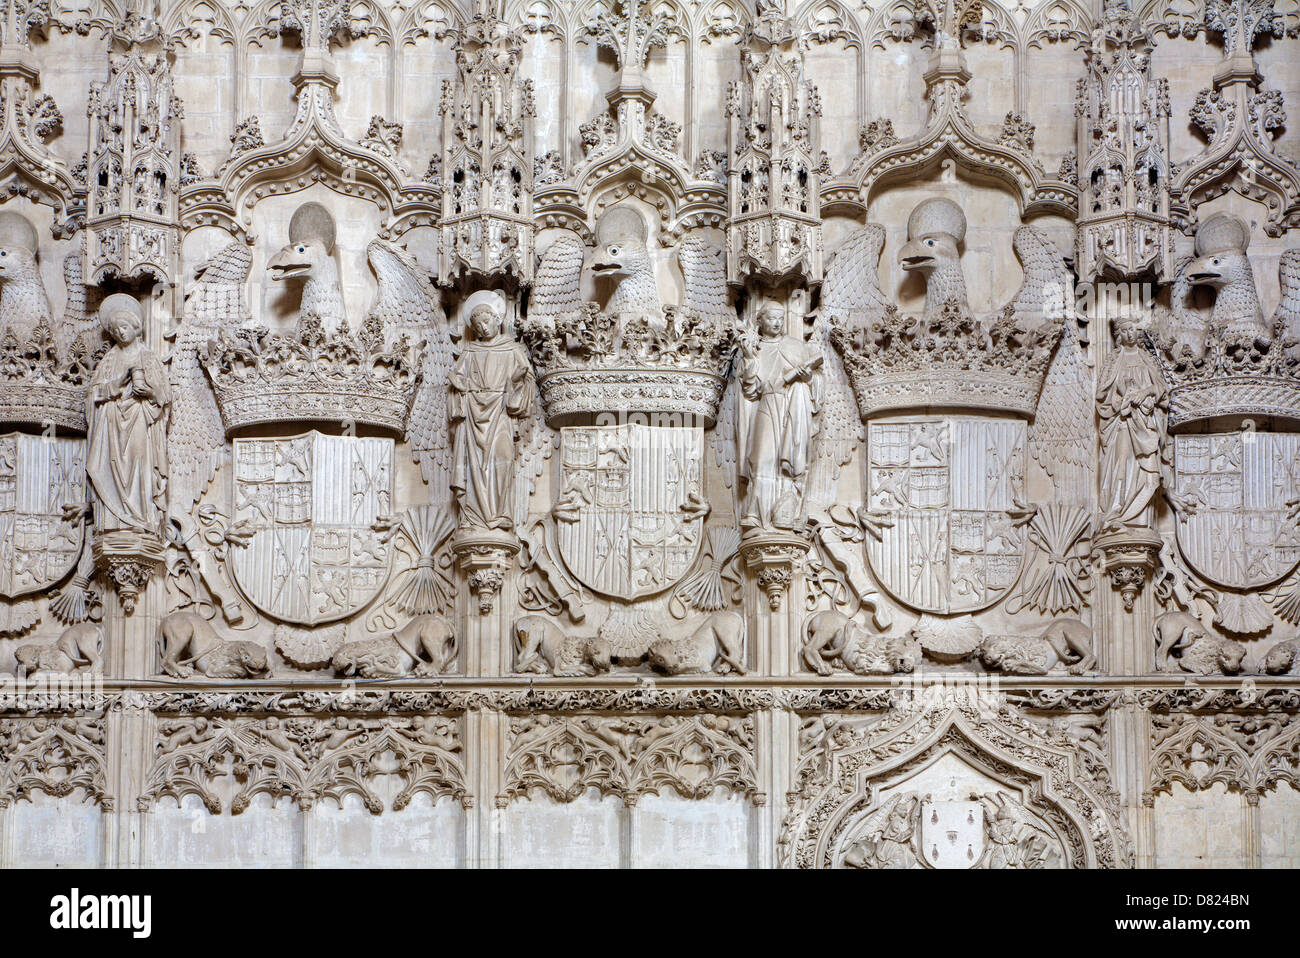 TOLEDO - MARCH 8: Detail of gothic interior of Monasterio San Juan de los Reyes or Monastery of Saint John of the - Stock Image